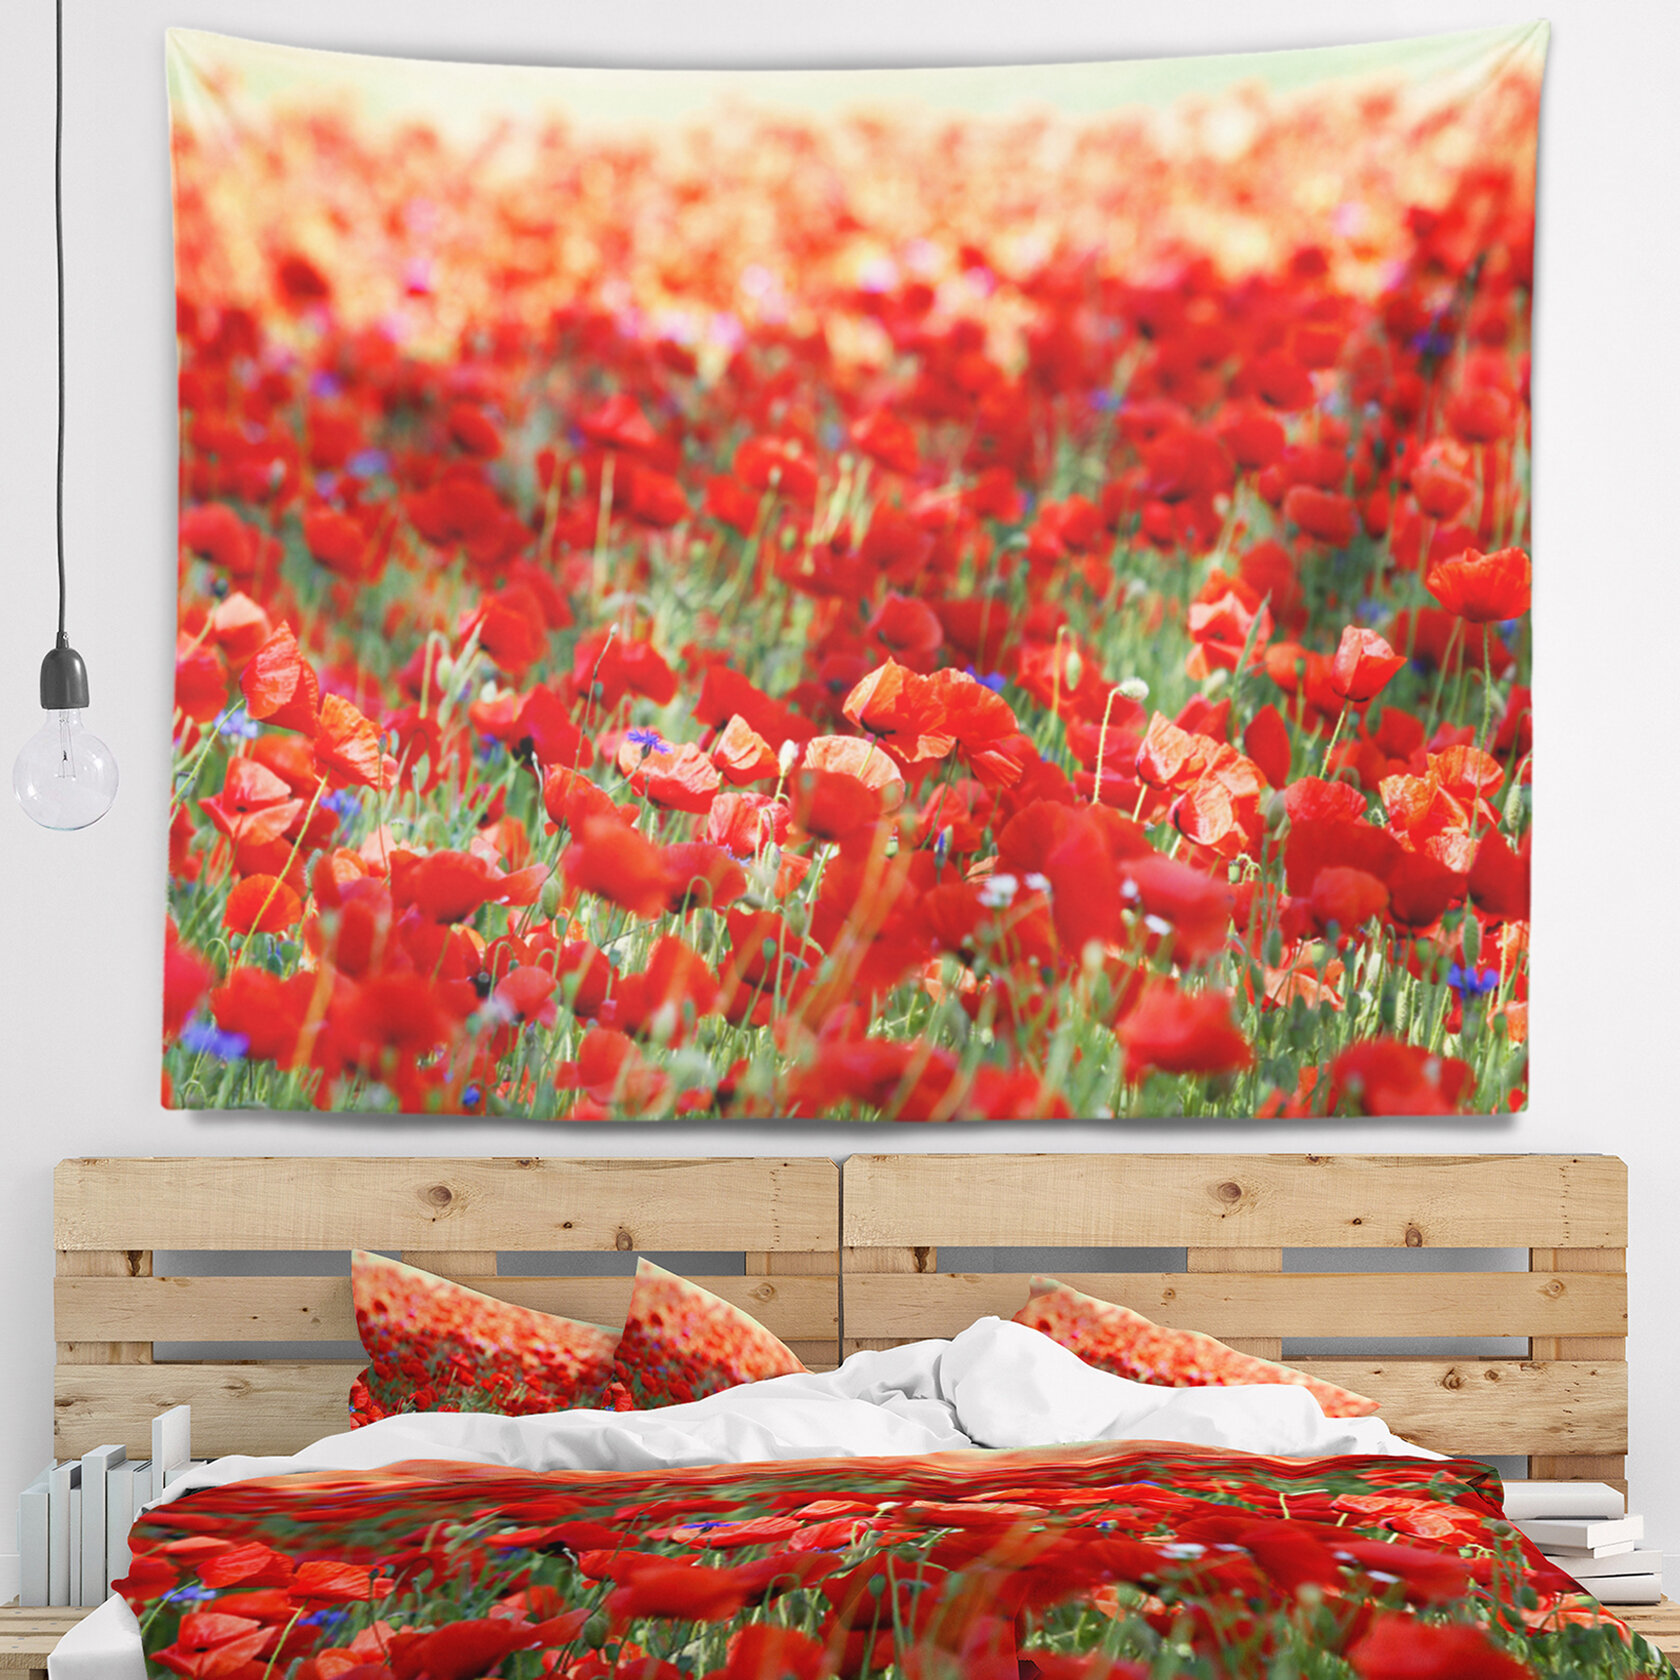 East Urban Home Thick Red Poppy Flower Field Tapestry And Wall